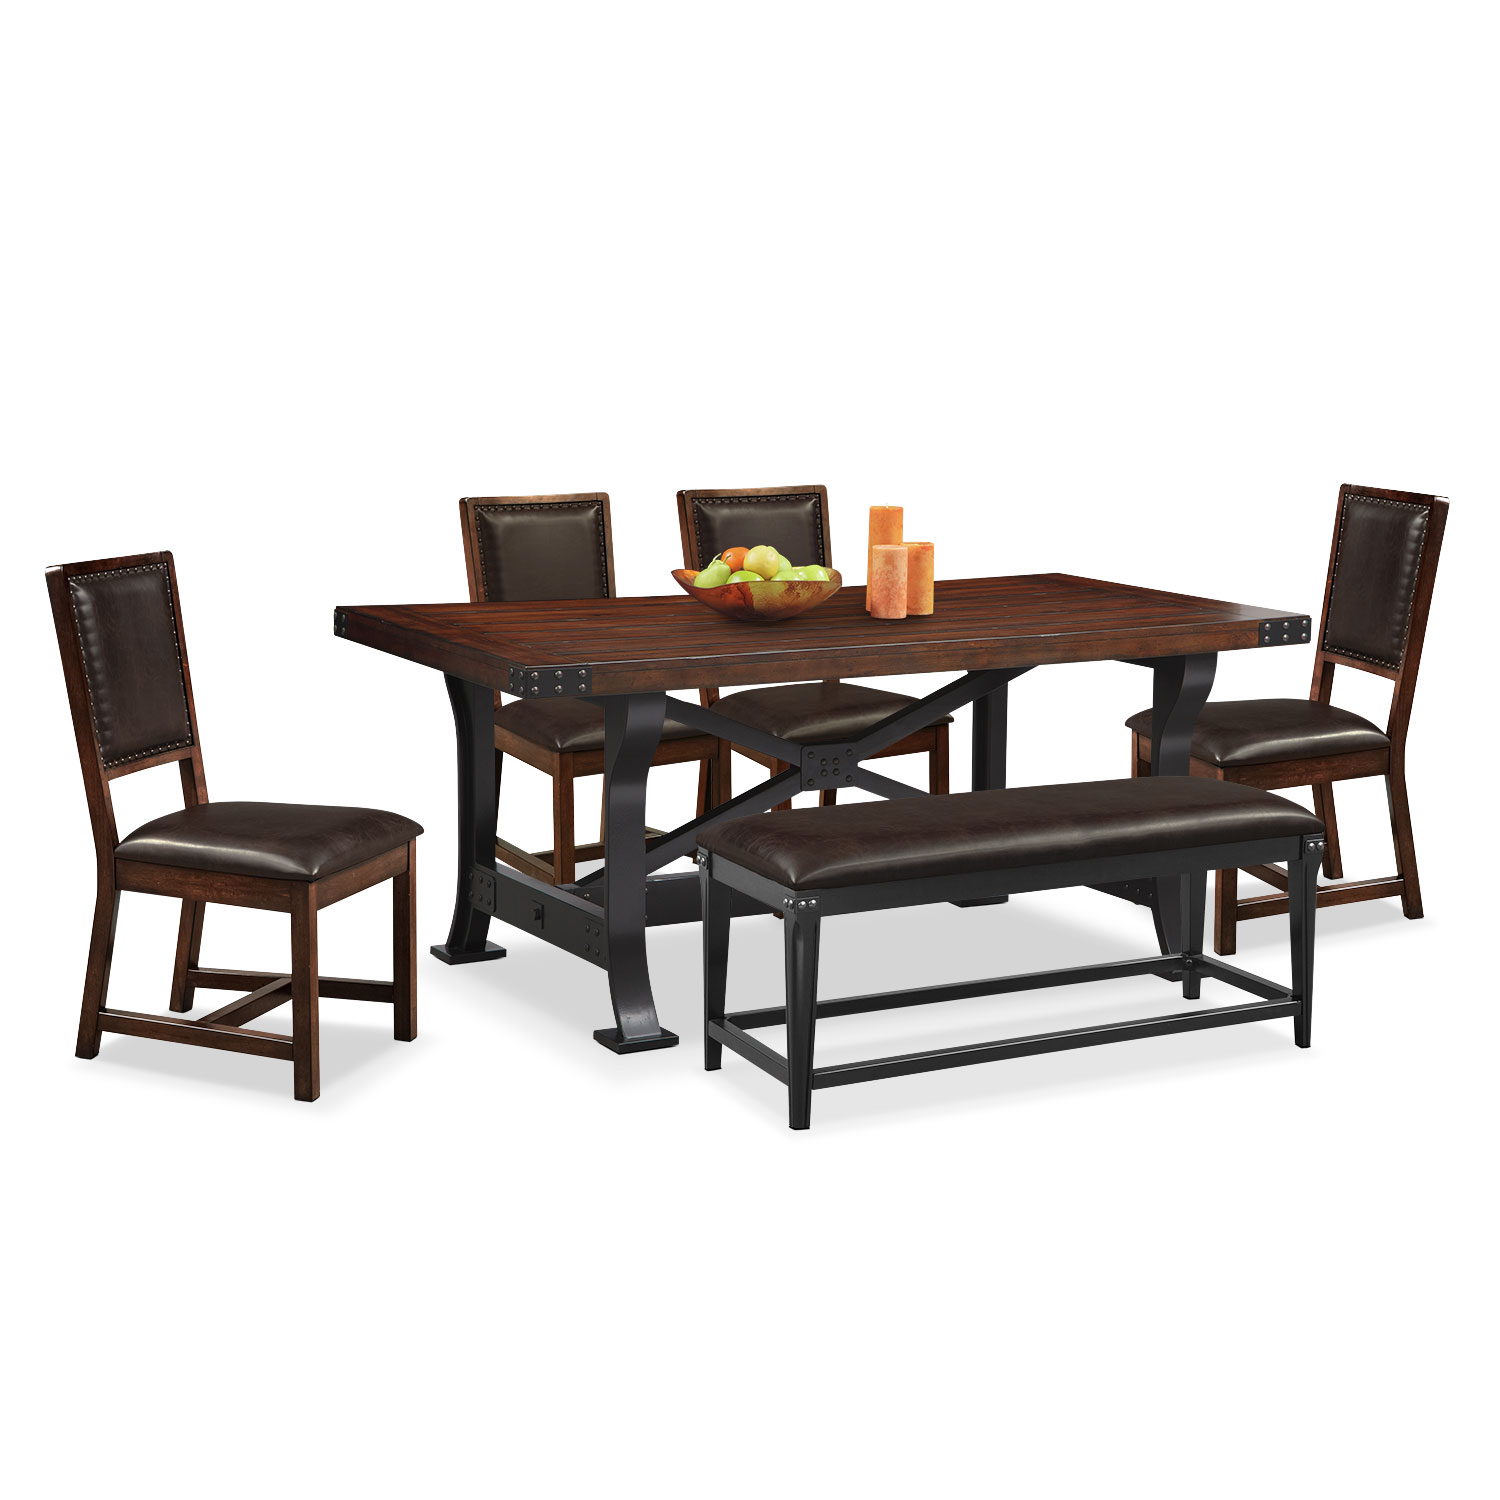 Newcastle Table 4 Chairs and Bench Mahogany Value  : 430026 from www.valuecityfurniture.com size 1500 x 1500 jpeg 139kB